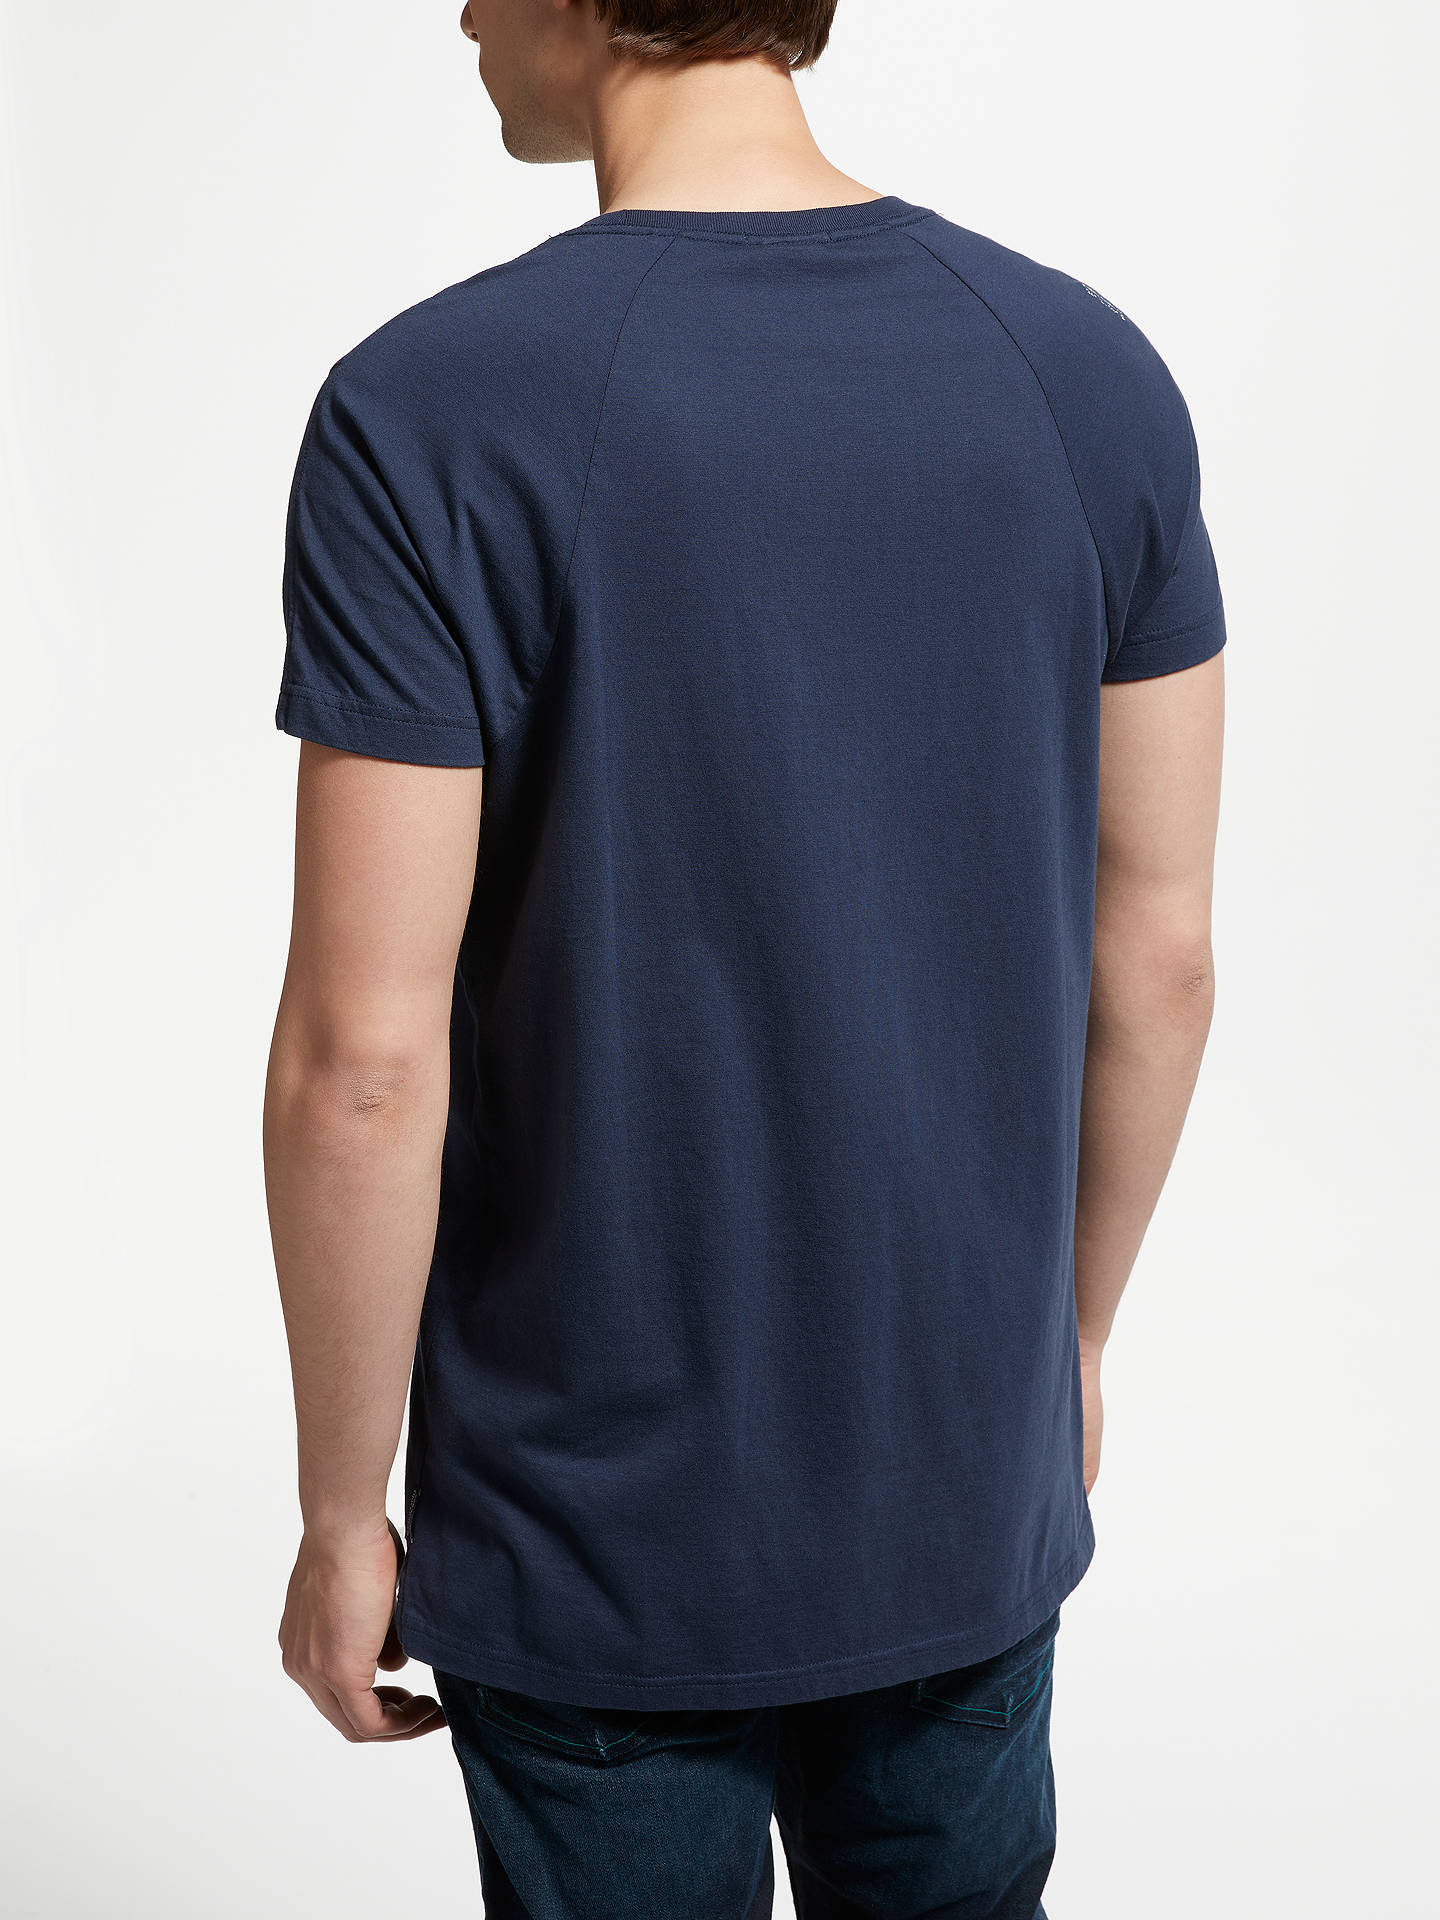 Buy Scotch & Soda Lamplight Poster Graphic T-Shirt, Blue, M Online at johnlewis.com